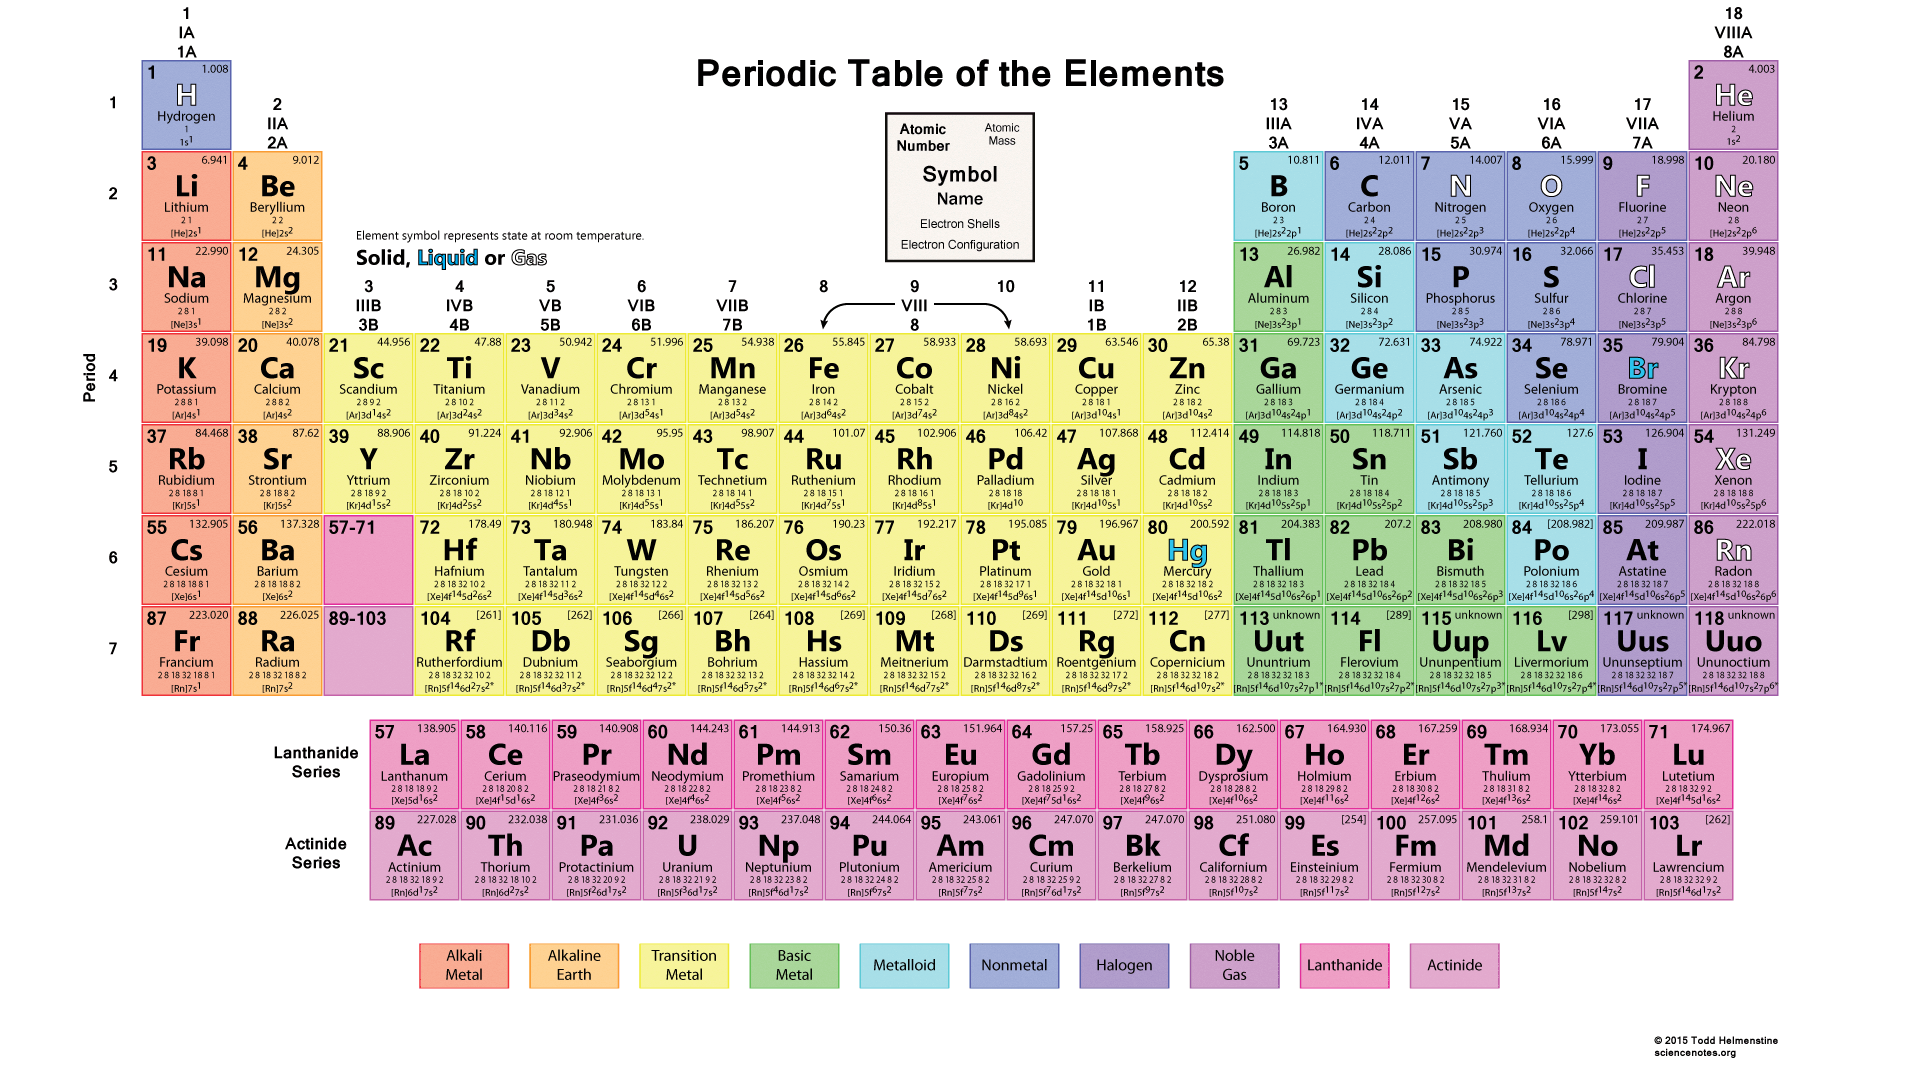 complete periodic table - Periodic Table Charges Cheat Sheet